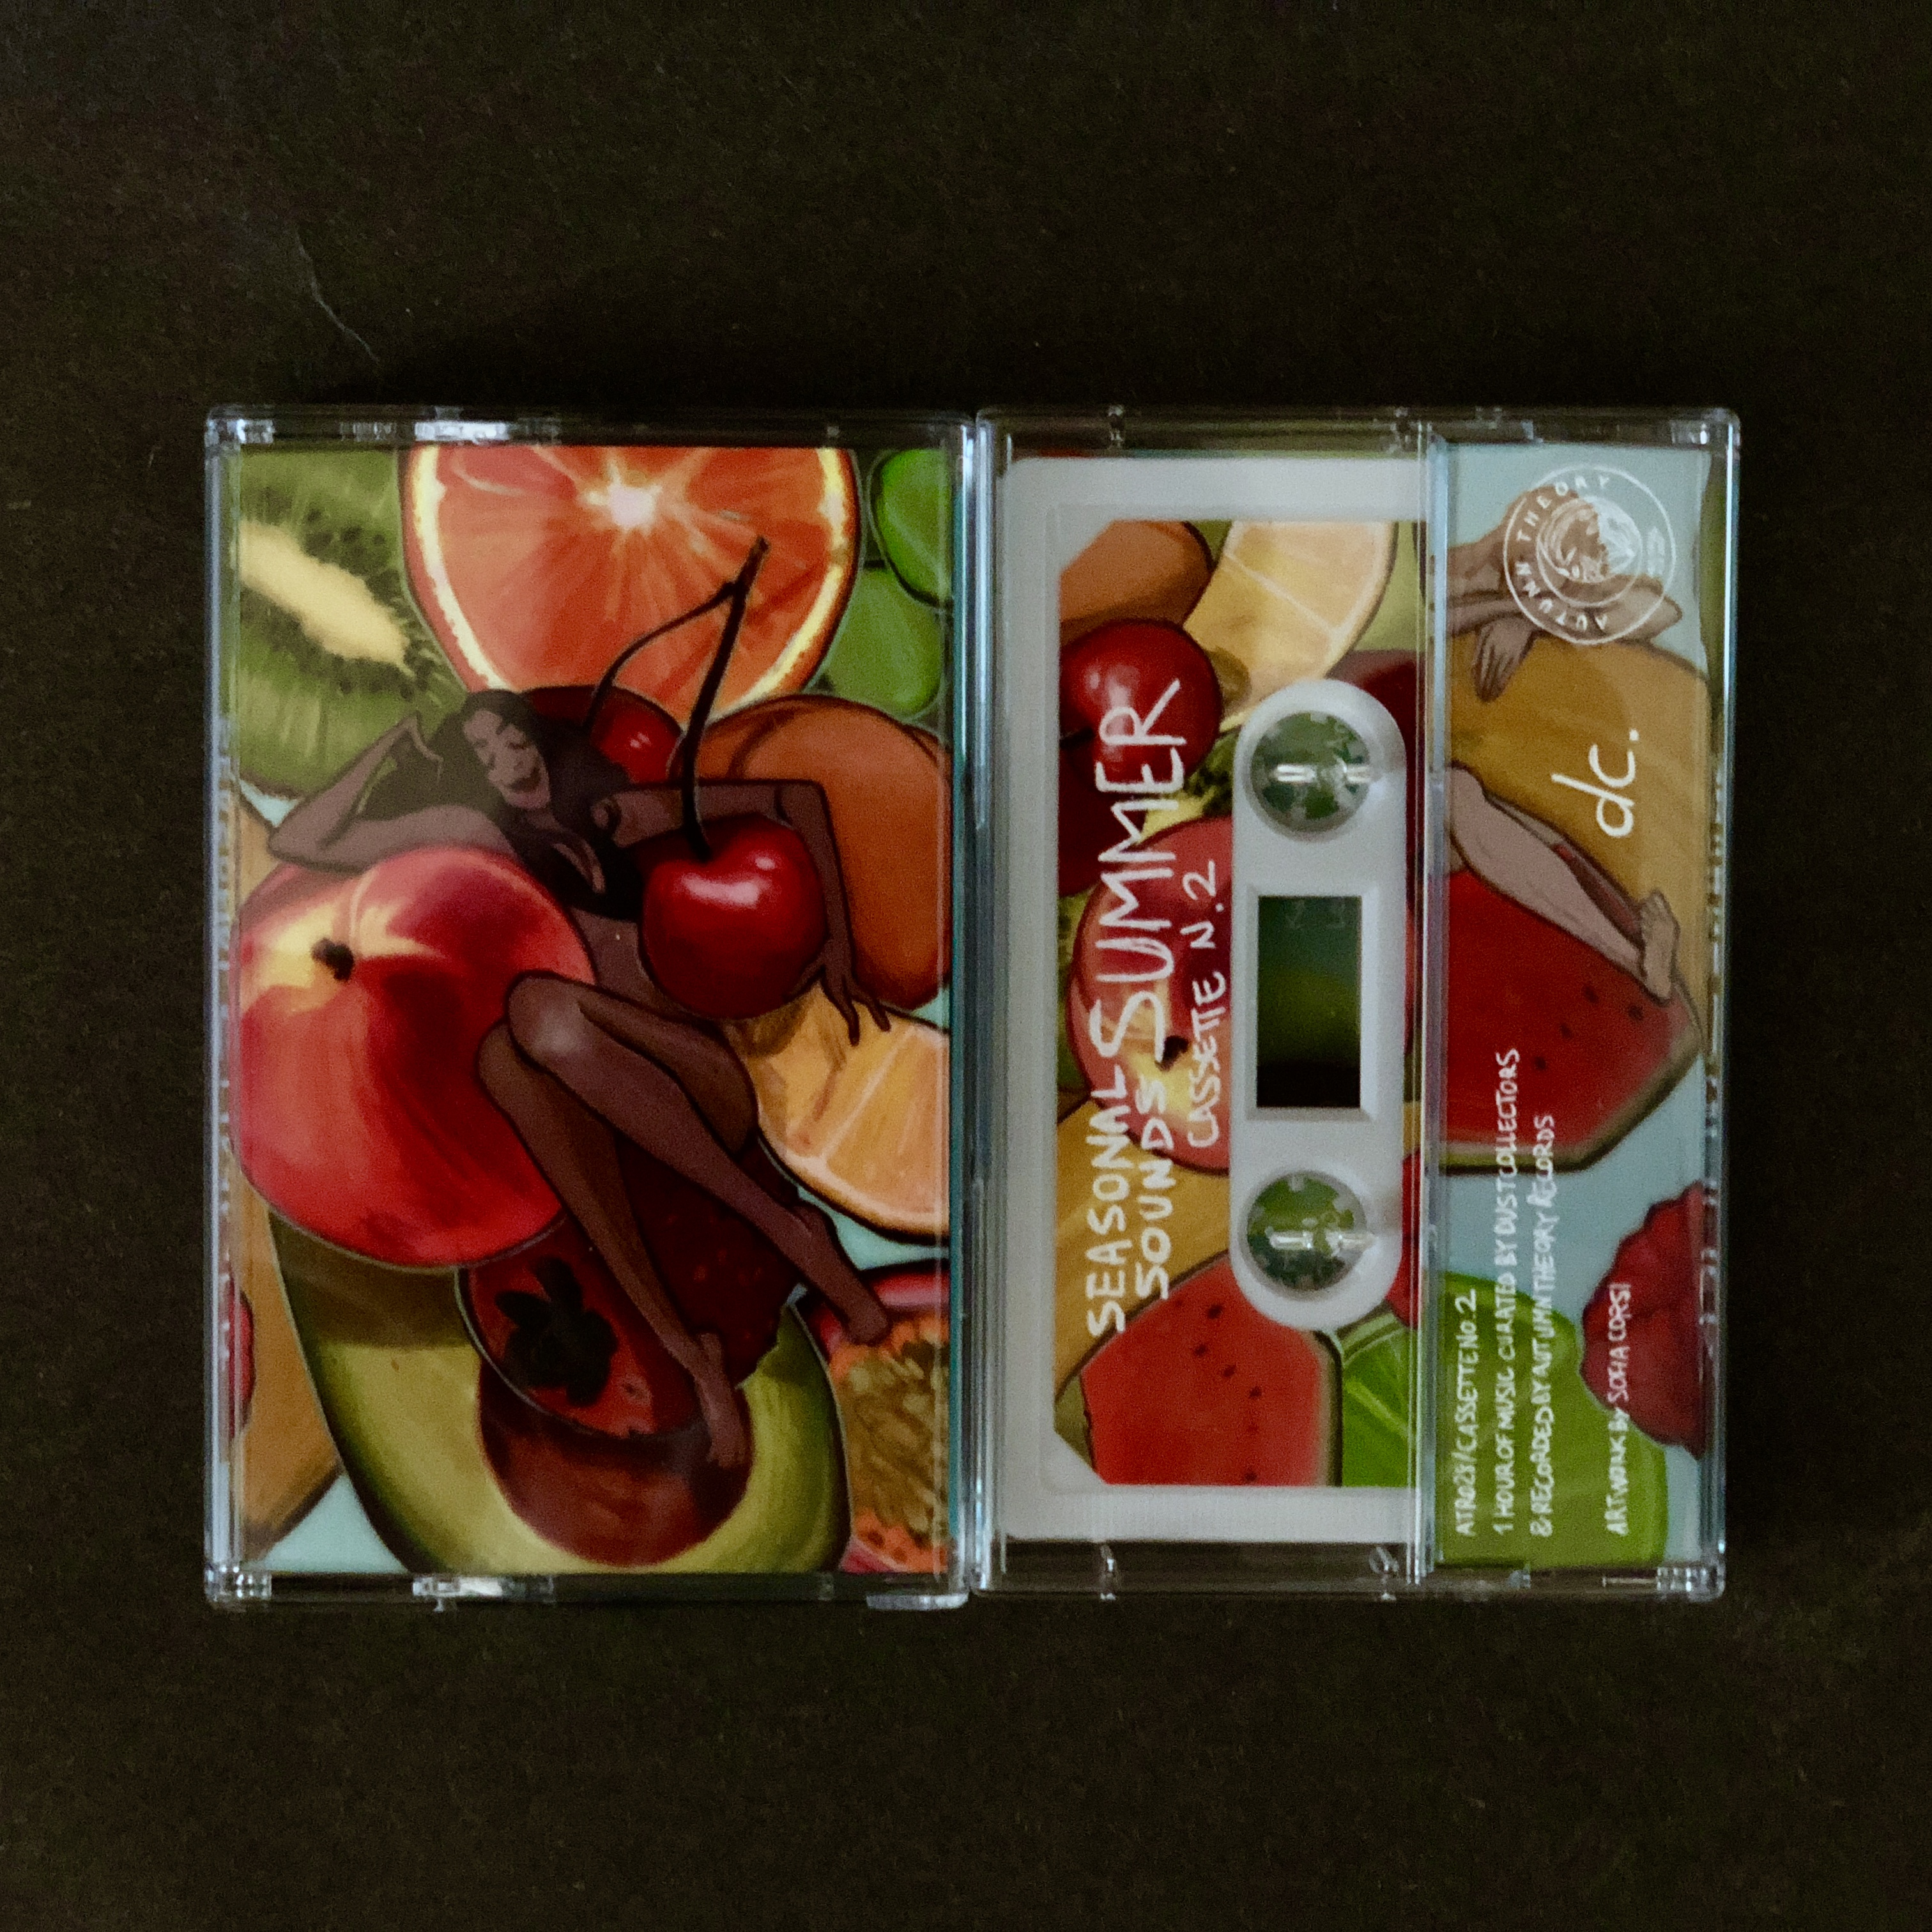 Autumn Theory Records - Seasonal Sounds / Summer Compilation